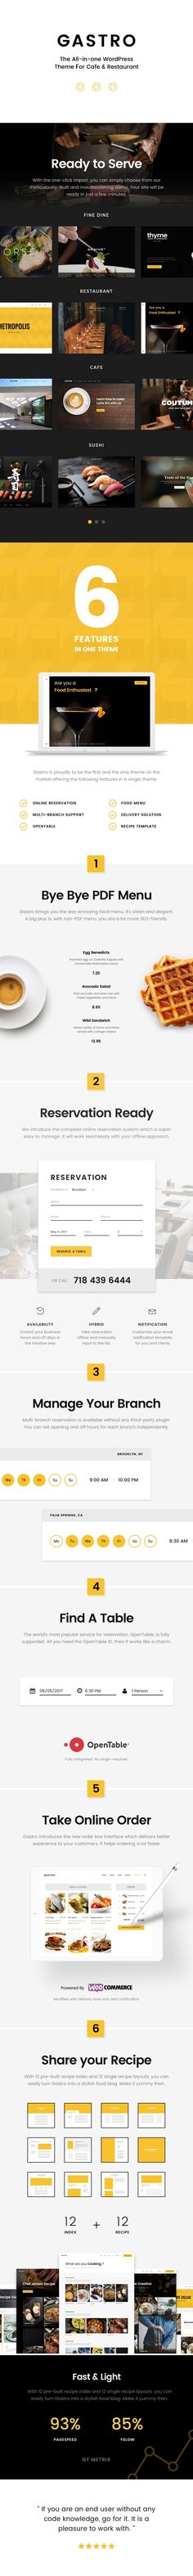 Panagea - Hotel and Tours Booking WordPress Theme #Hotel #Tour - reservation forms in pdf